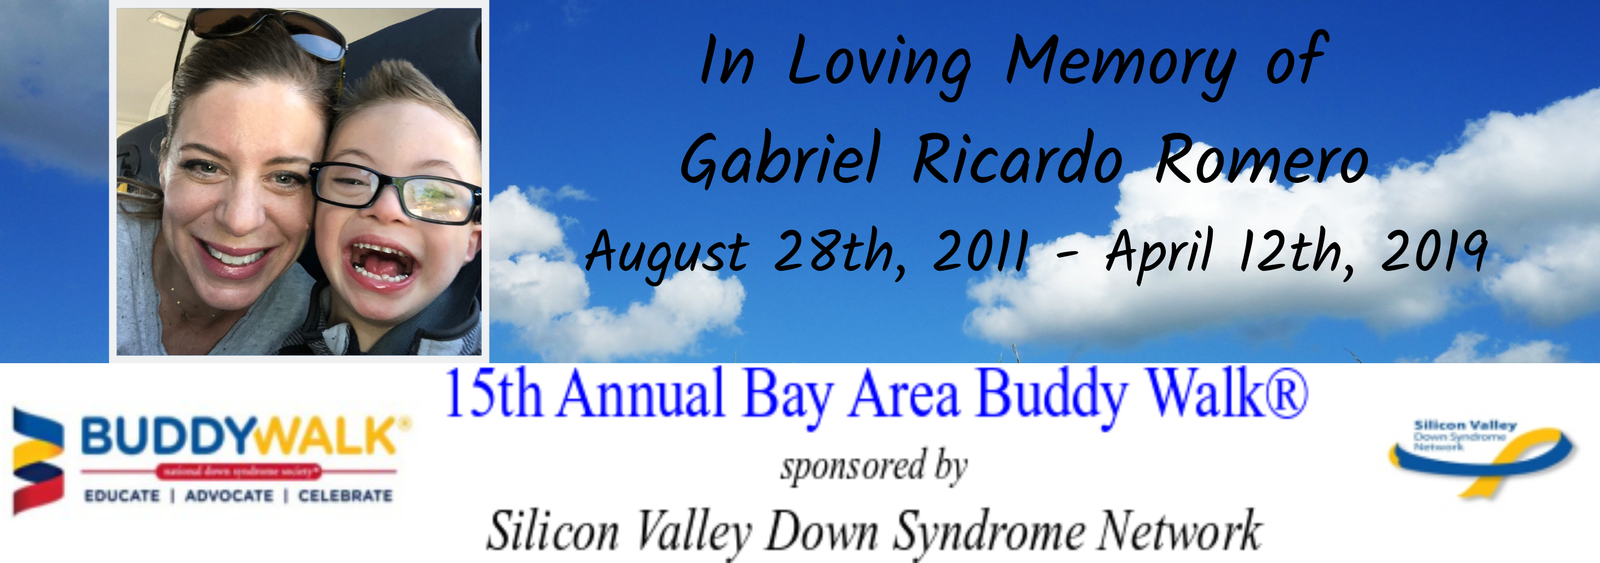 15th Annual Bay Area Buddy Walk®